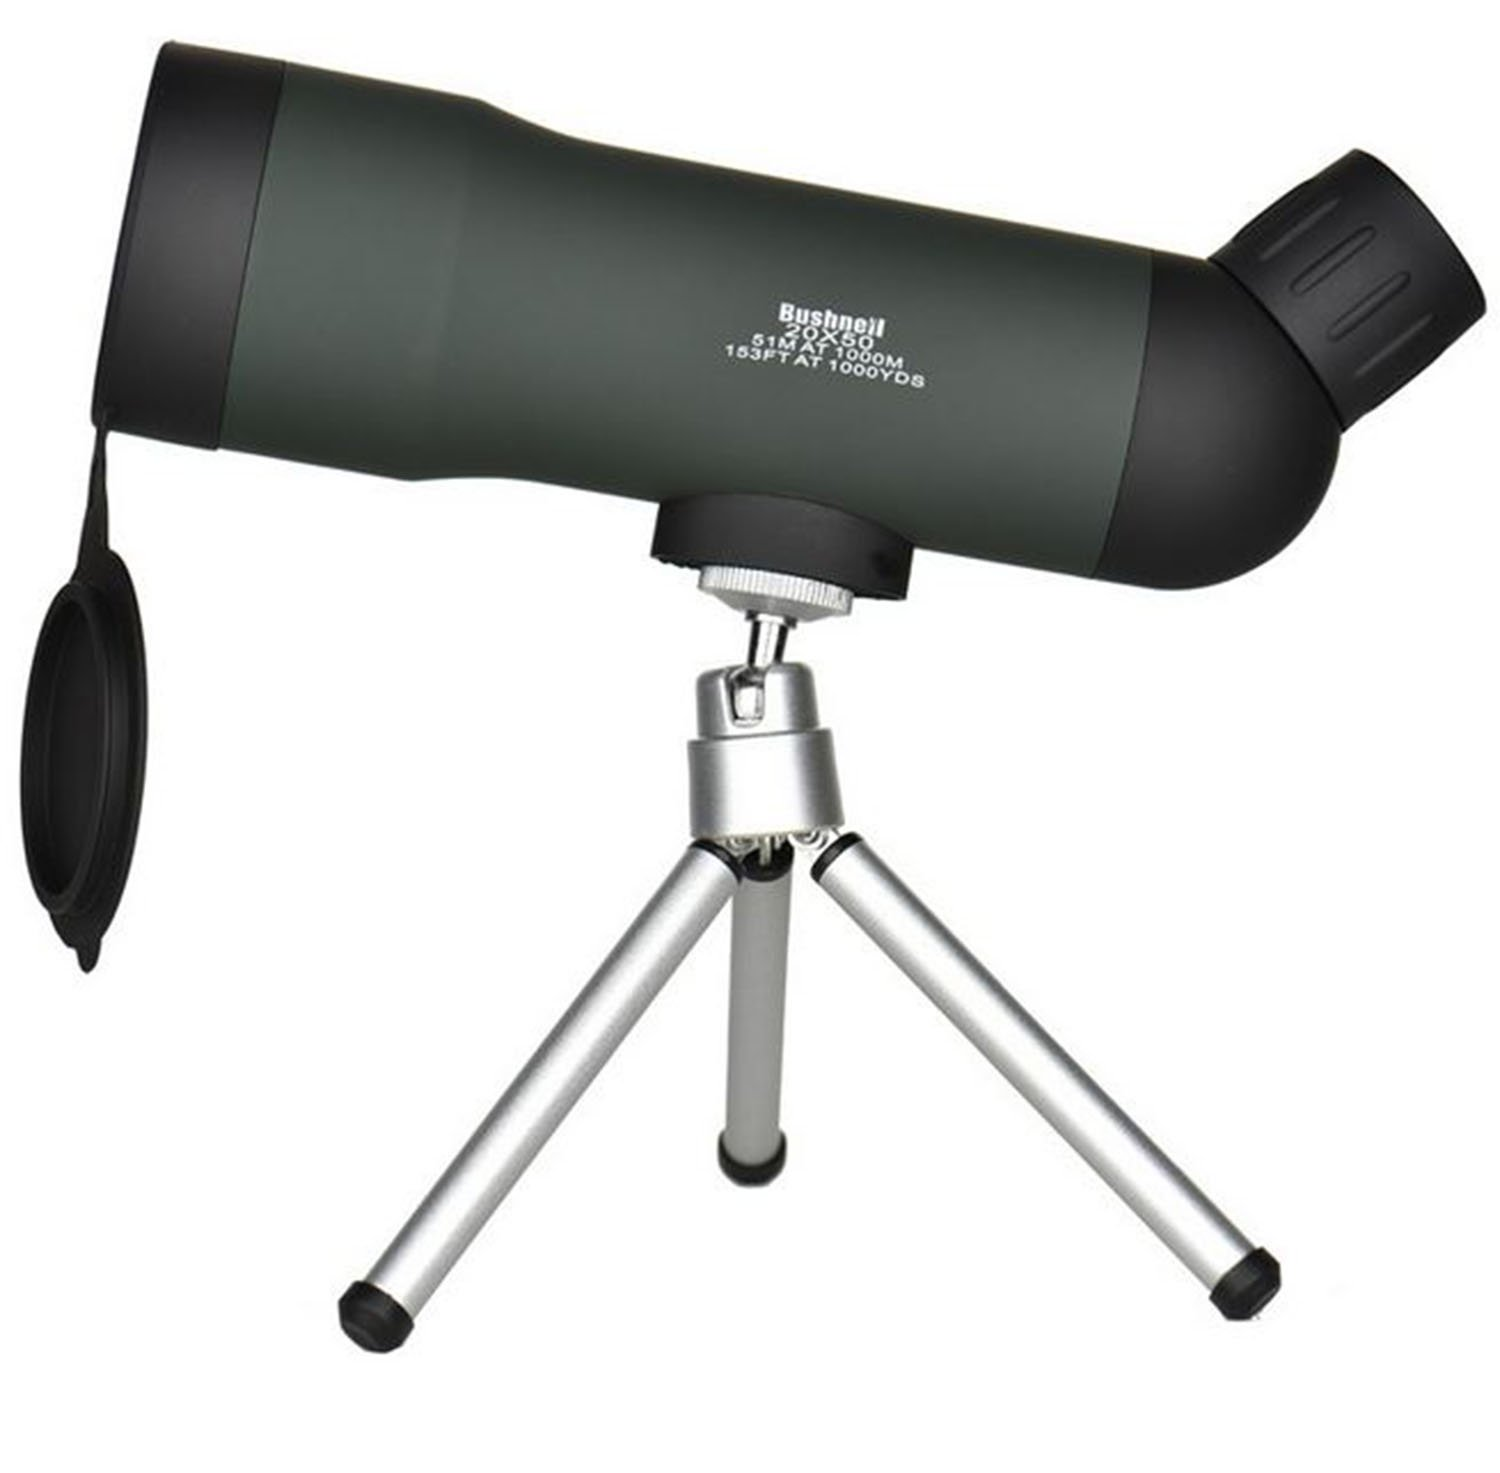 BOW 20x50 Waterproof Telescope Monocular Telescope,with Tripod Low Light Night Vision,Telescope for Taking Photos/Bird Watching/Hunting/Camping/Concert